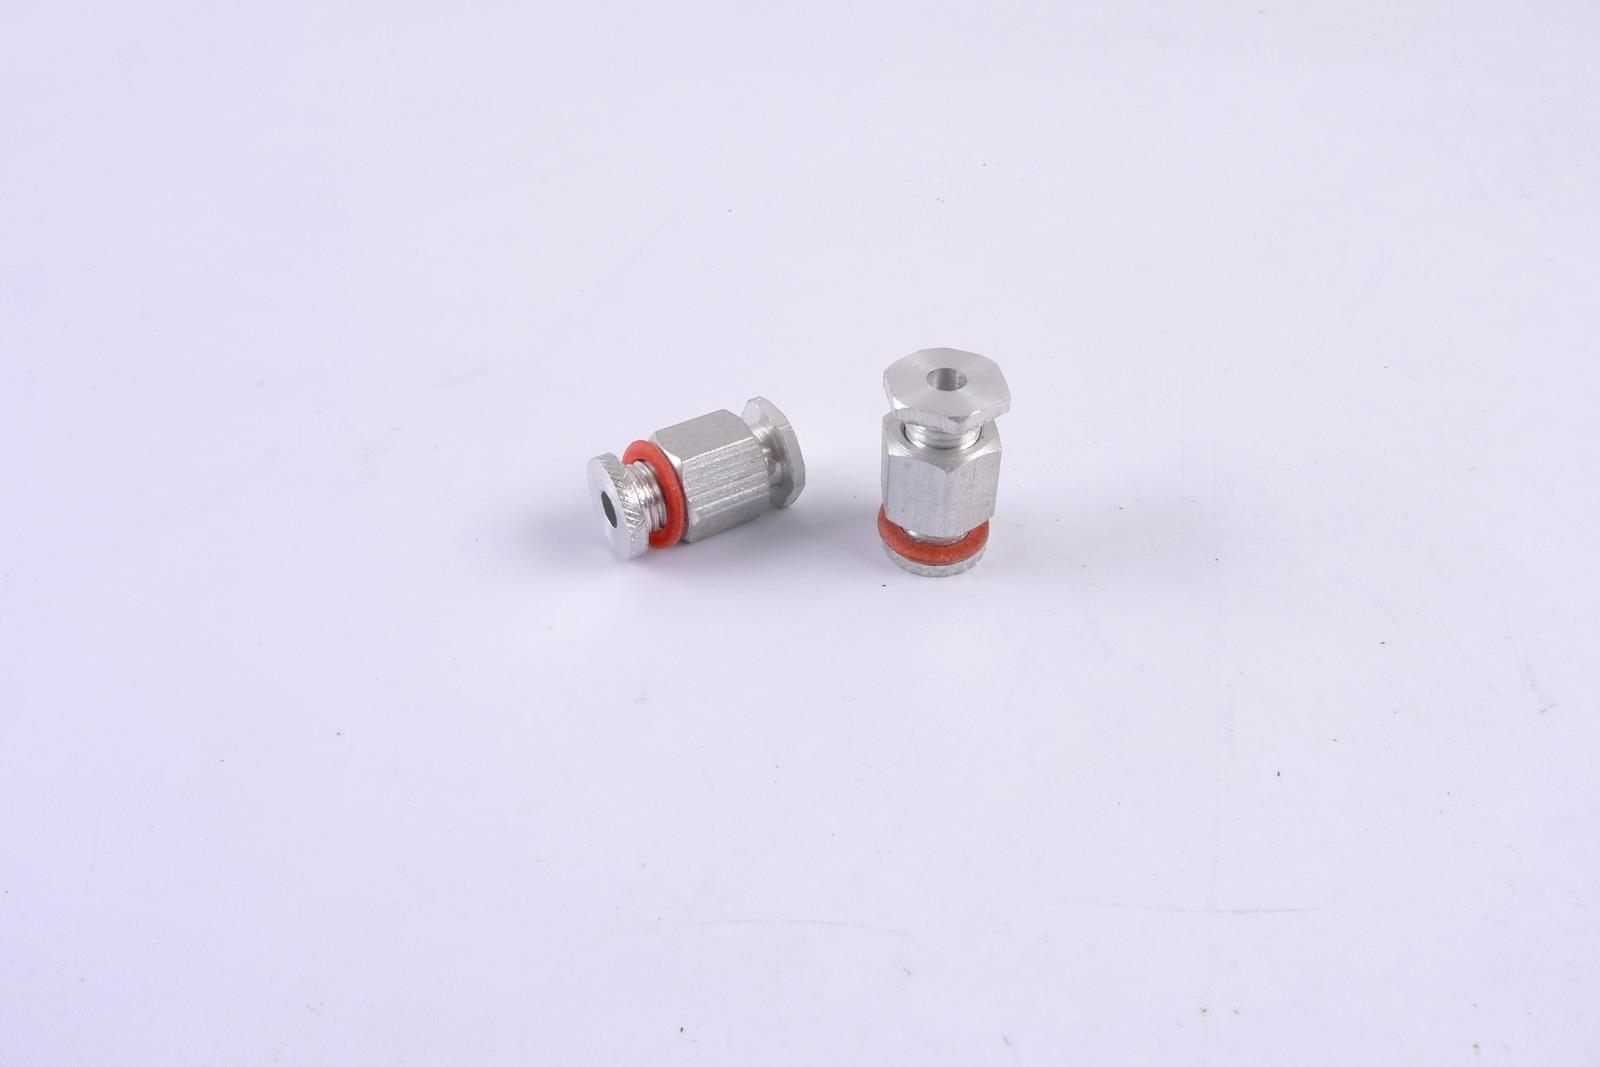 Anti clogging fittings of the pressure cooker pressure cooker safety valve safety valve plug pressure cooker safety plug Double Happiness disguise